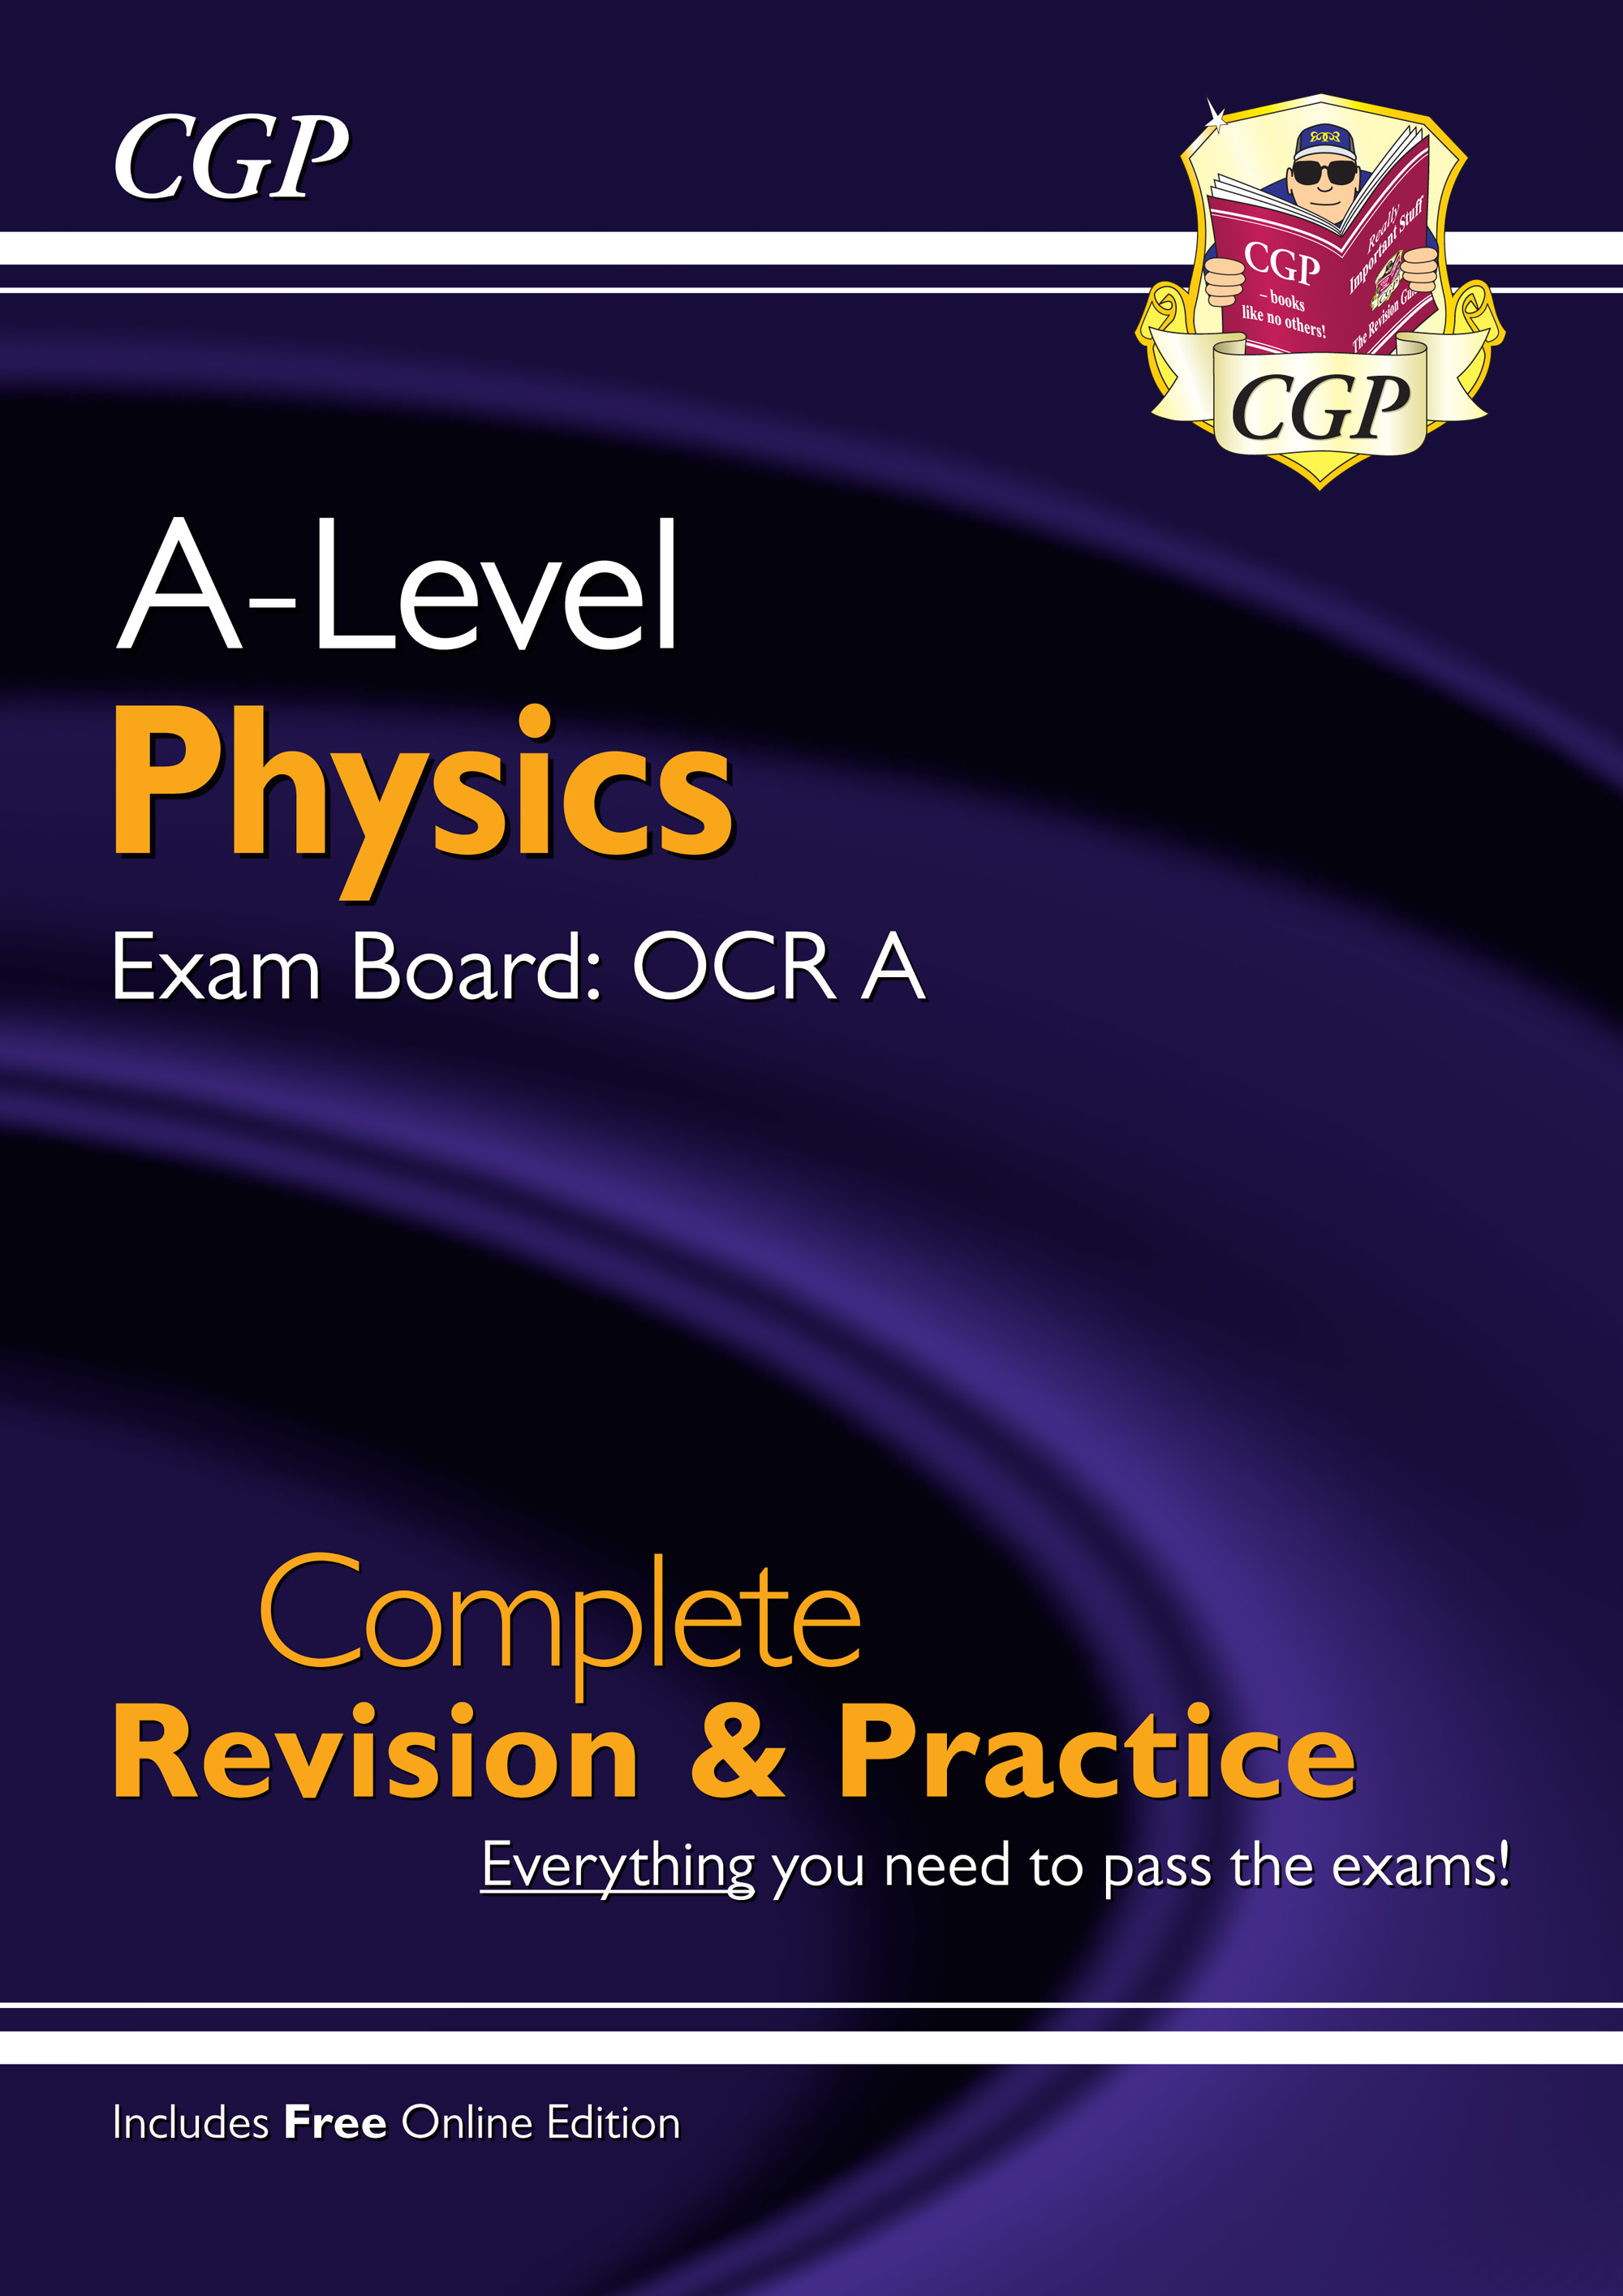 PRAR73 - A-Level Physics: OCR A Year 1 & 2 Complete Revision & Practice with Online Edition